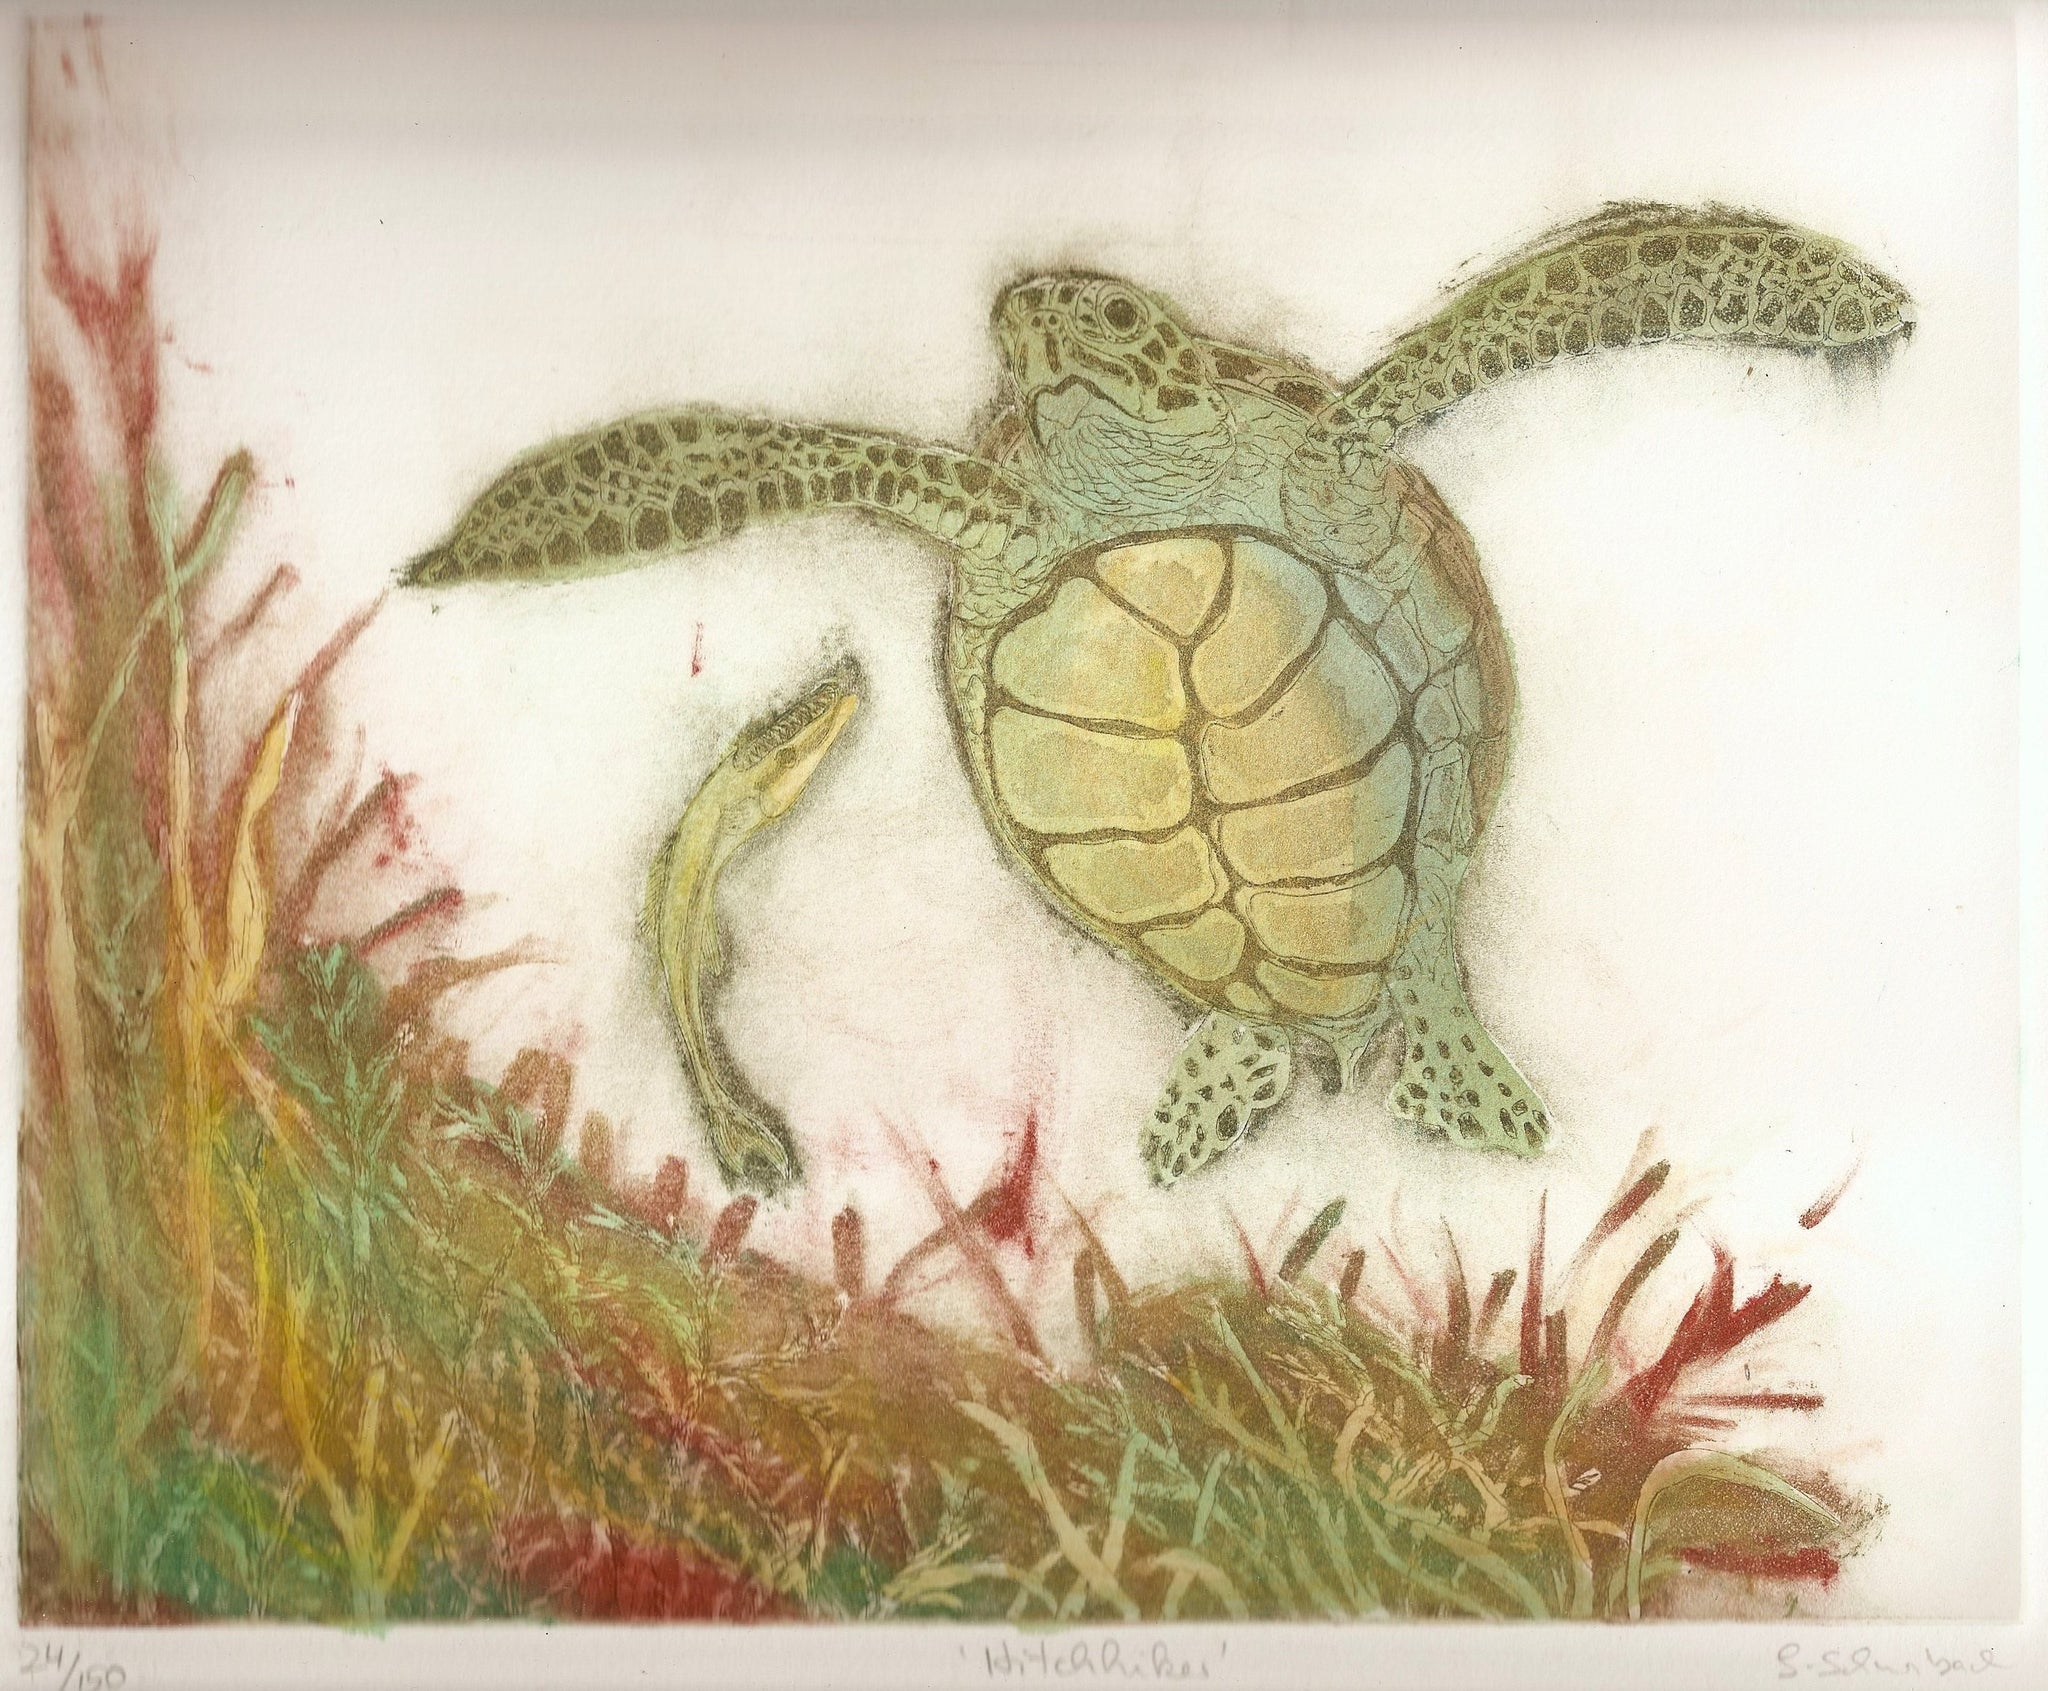 Hitchhiker Turtle Earth tone (one-plate etching)